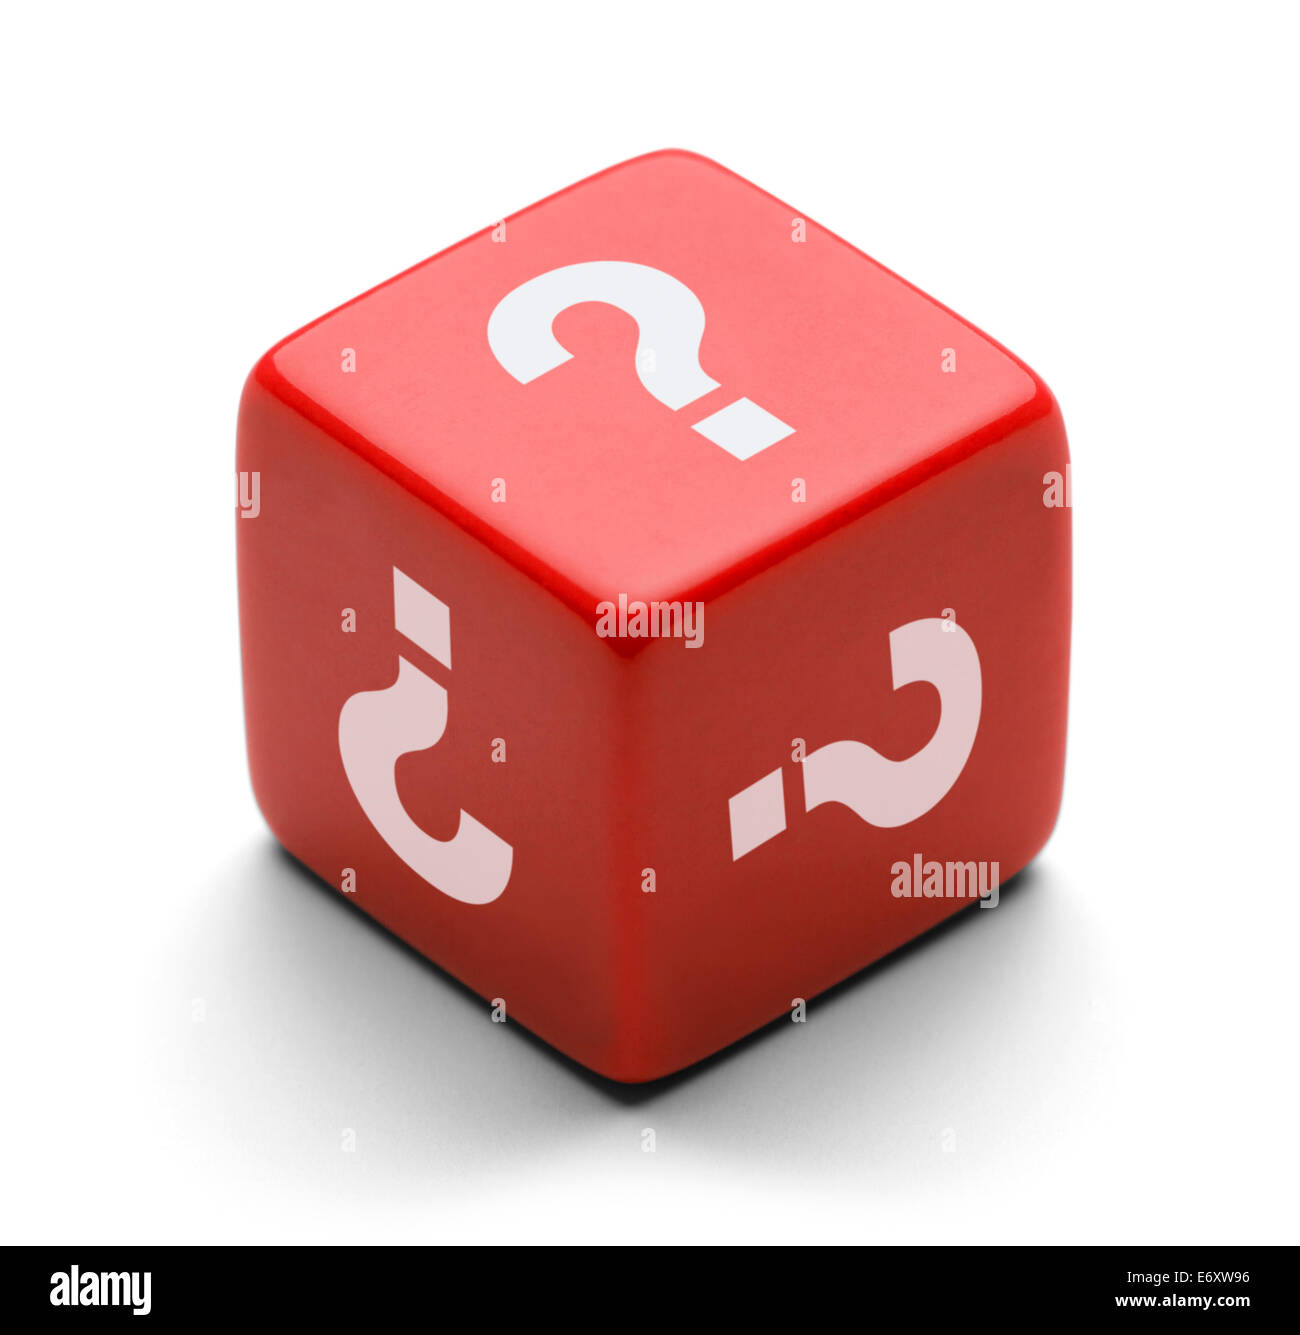 Red Dice With Question Marks Isolated on White Background. - Stock Image